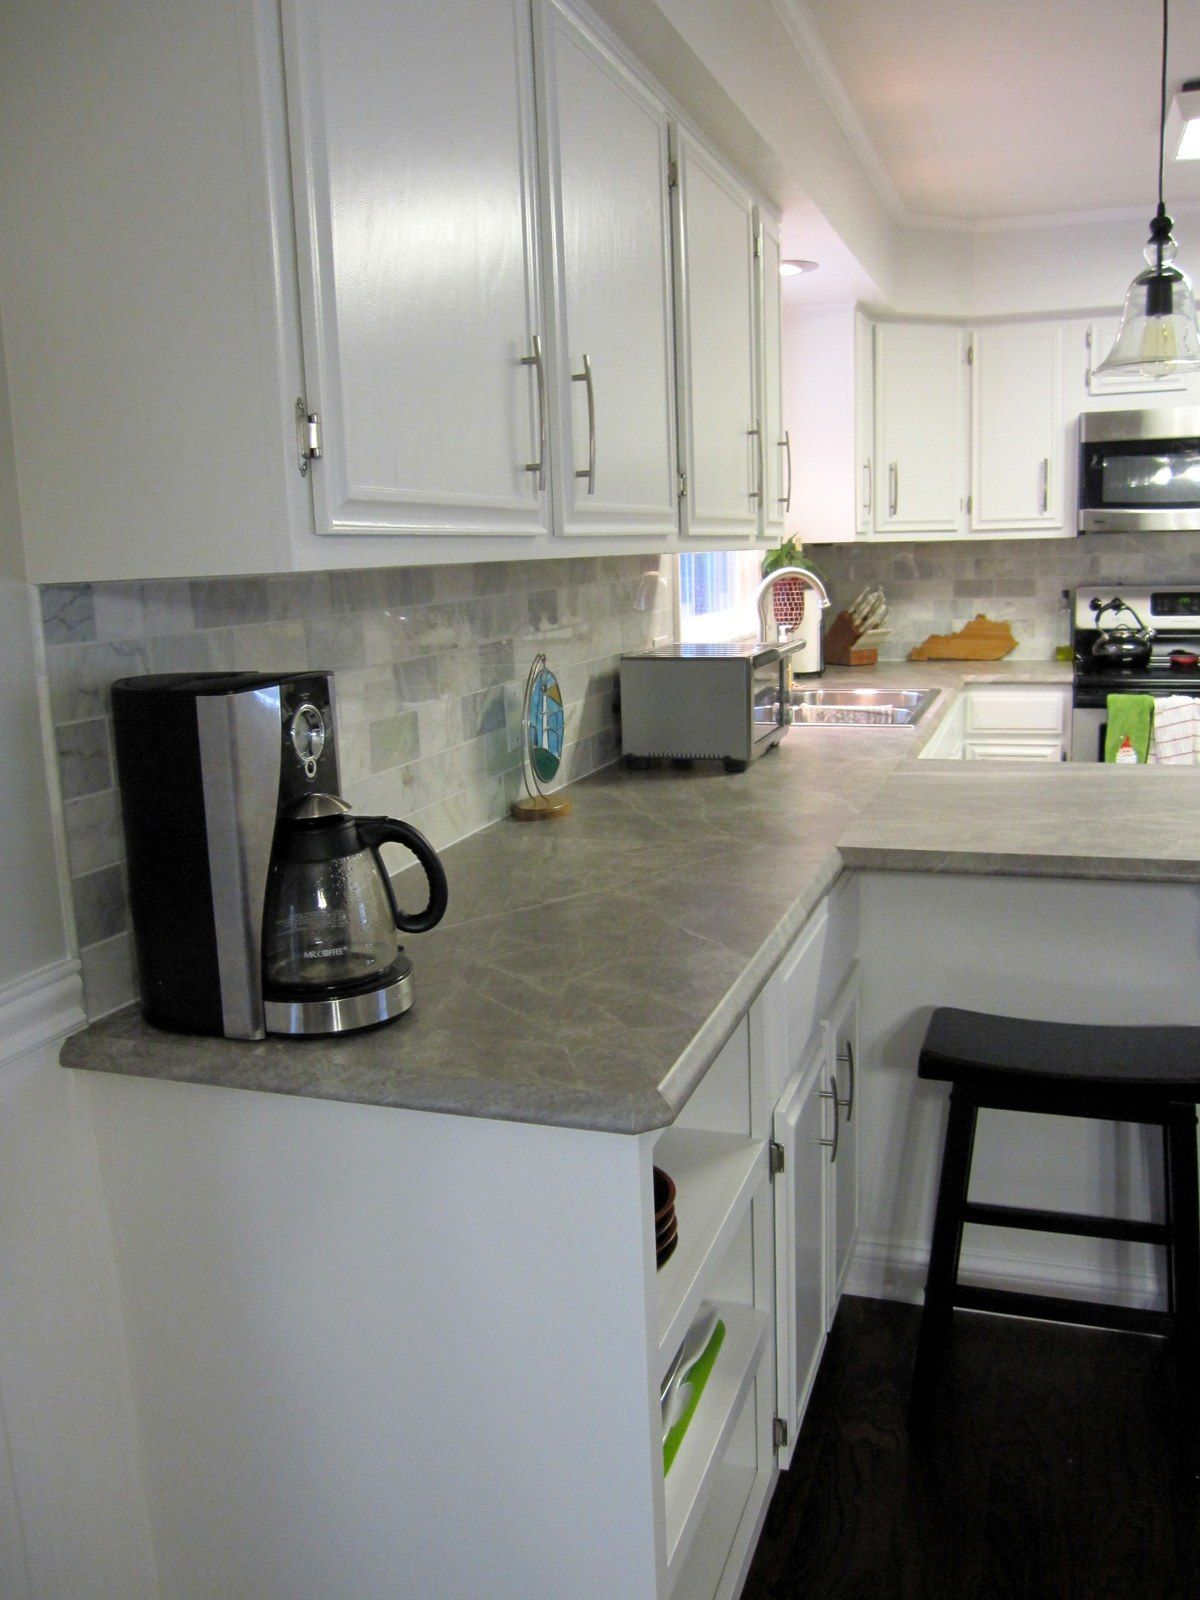 Break It Down Now Our Kitchen Remodel Costs Cheap Kitchen Remodel Kitchen Remodel Cost Kitchen Remodel